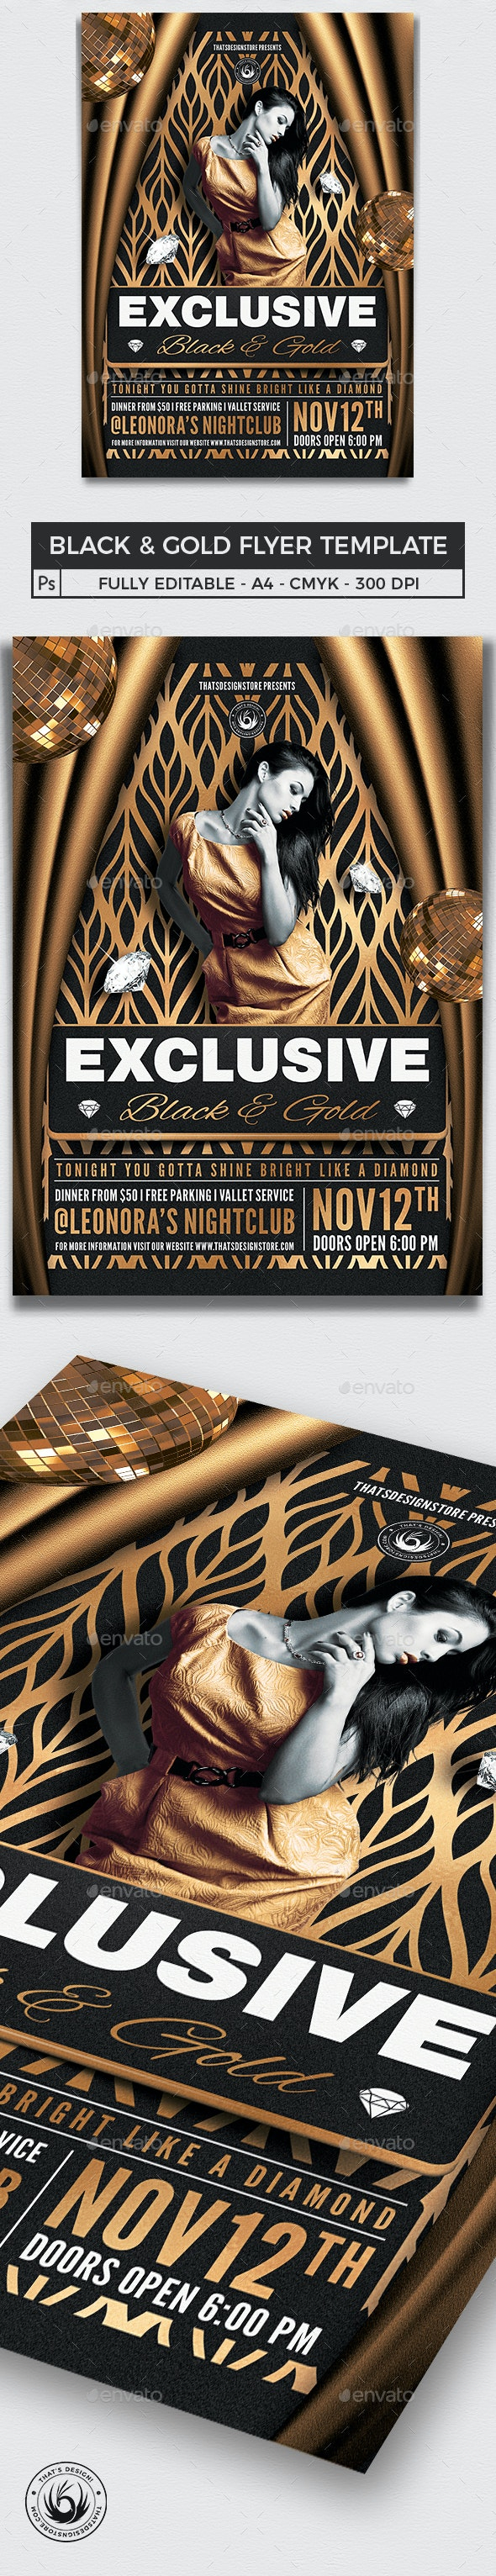 Black and Gold Flyer Template V19 - Clubs & Parties Events